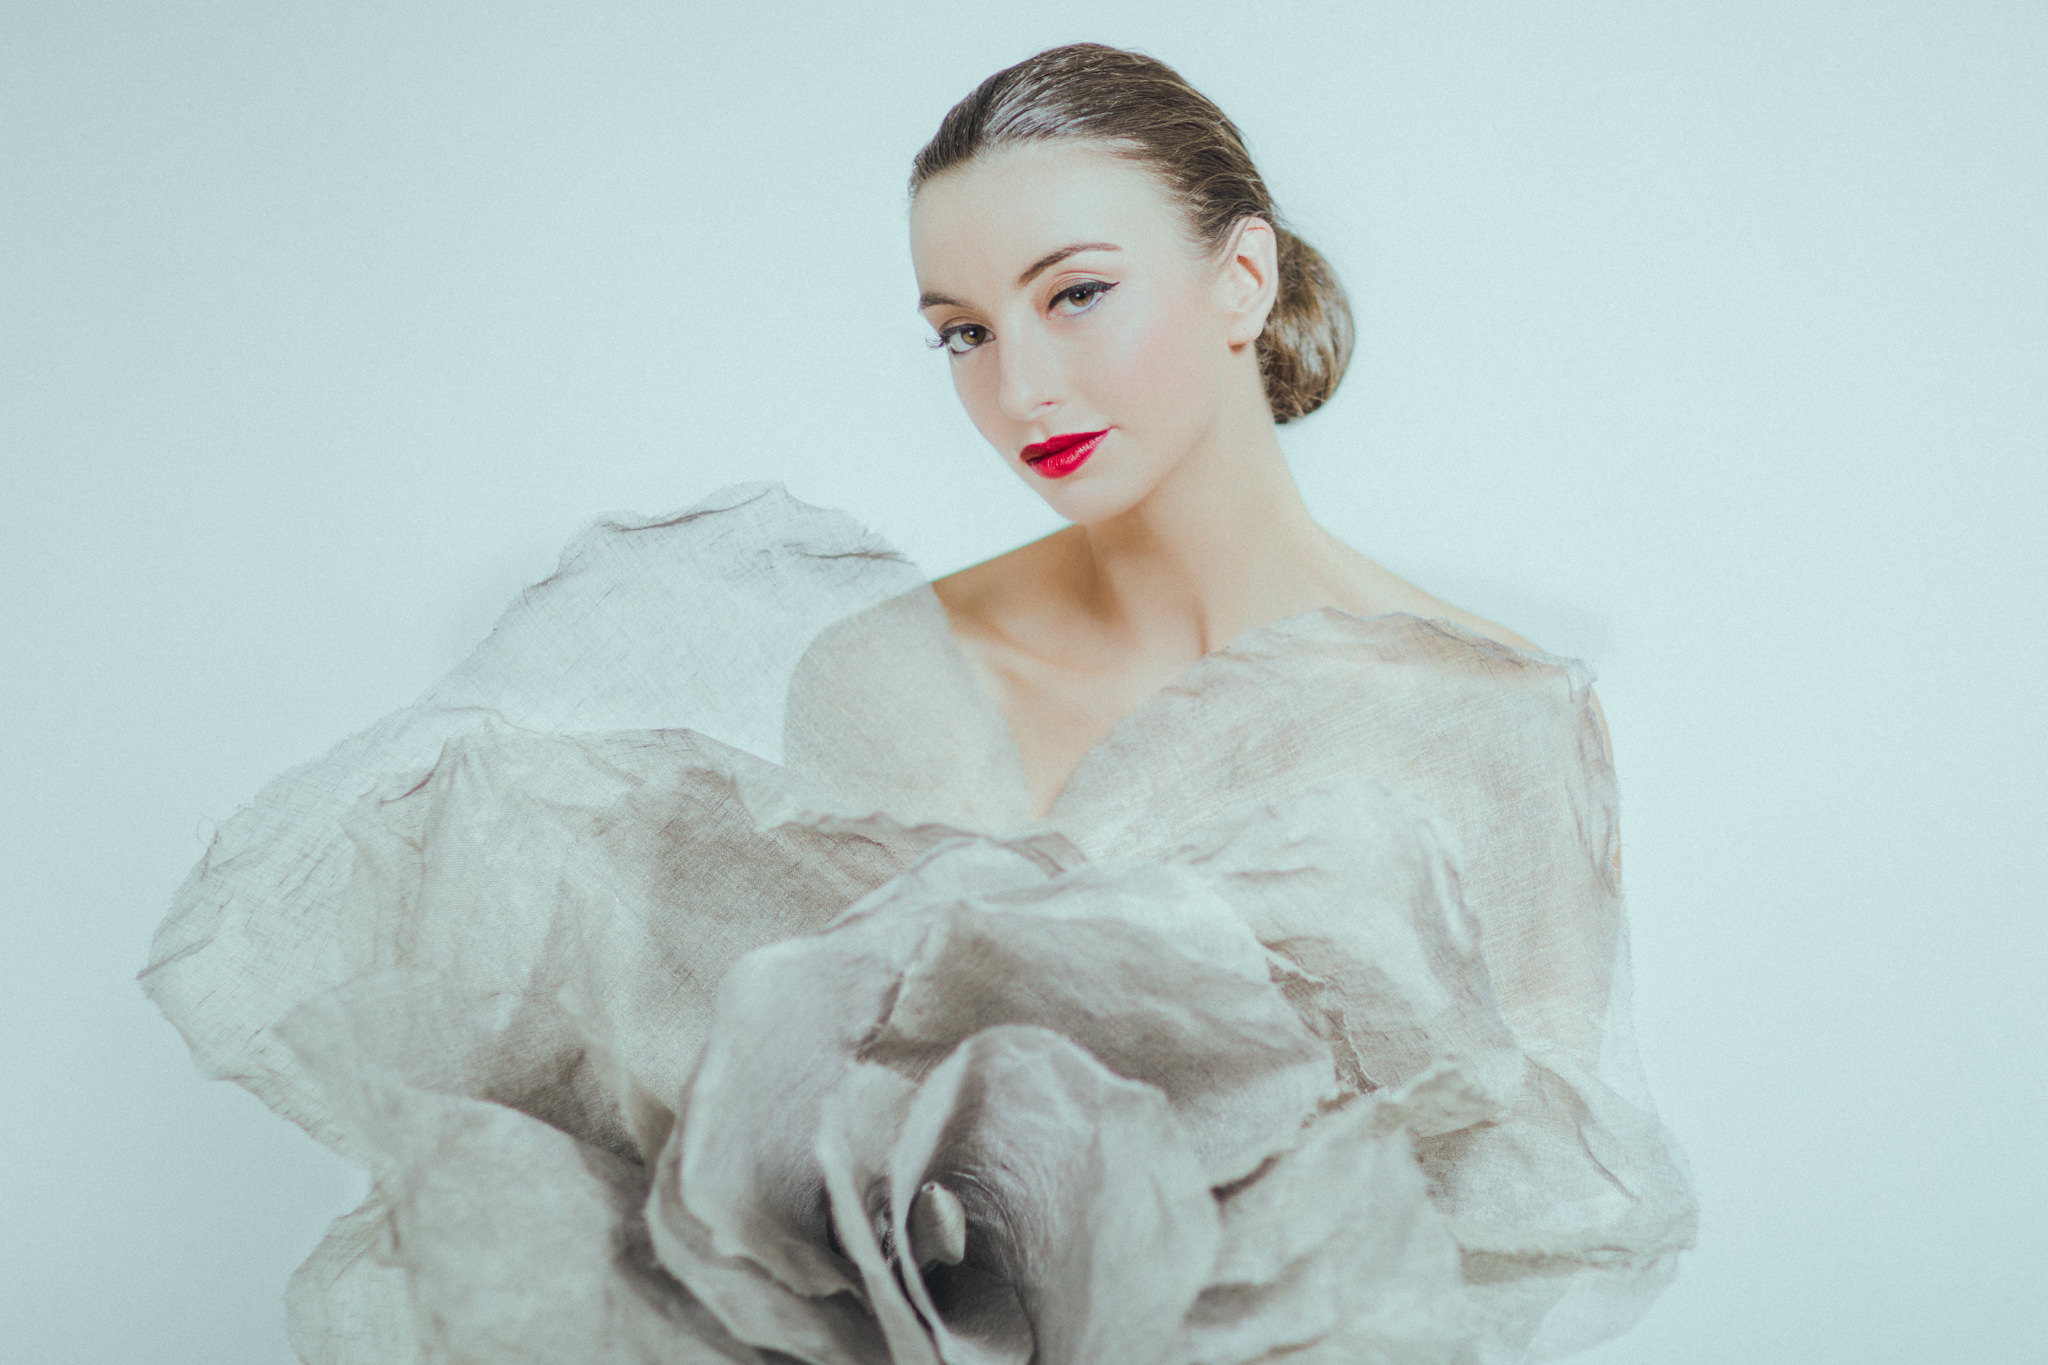 Tulle Photoshoot inspiration - Bauty Photography in Melbourne